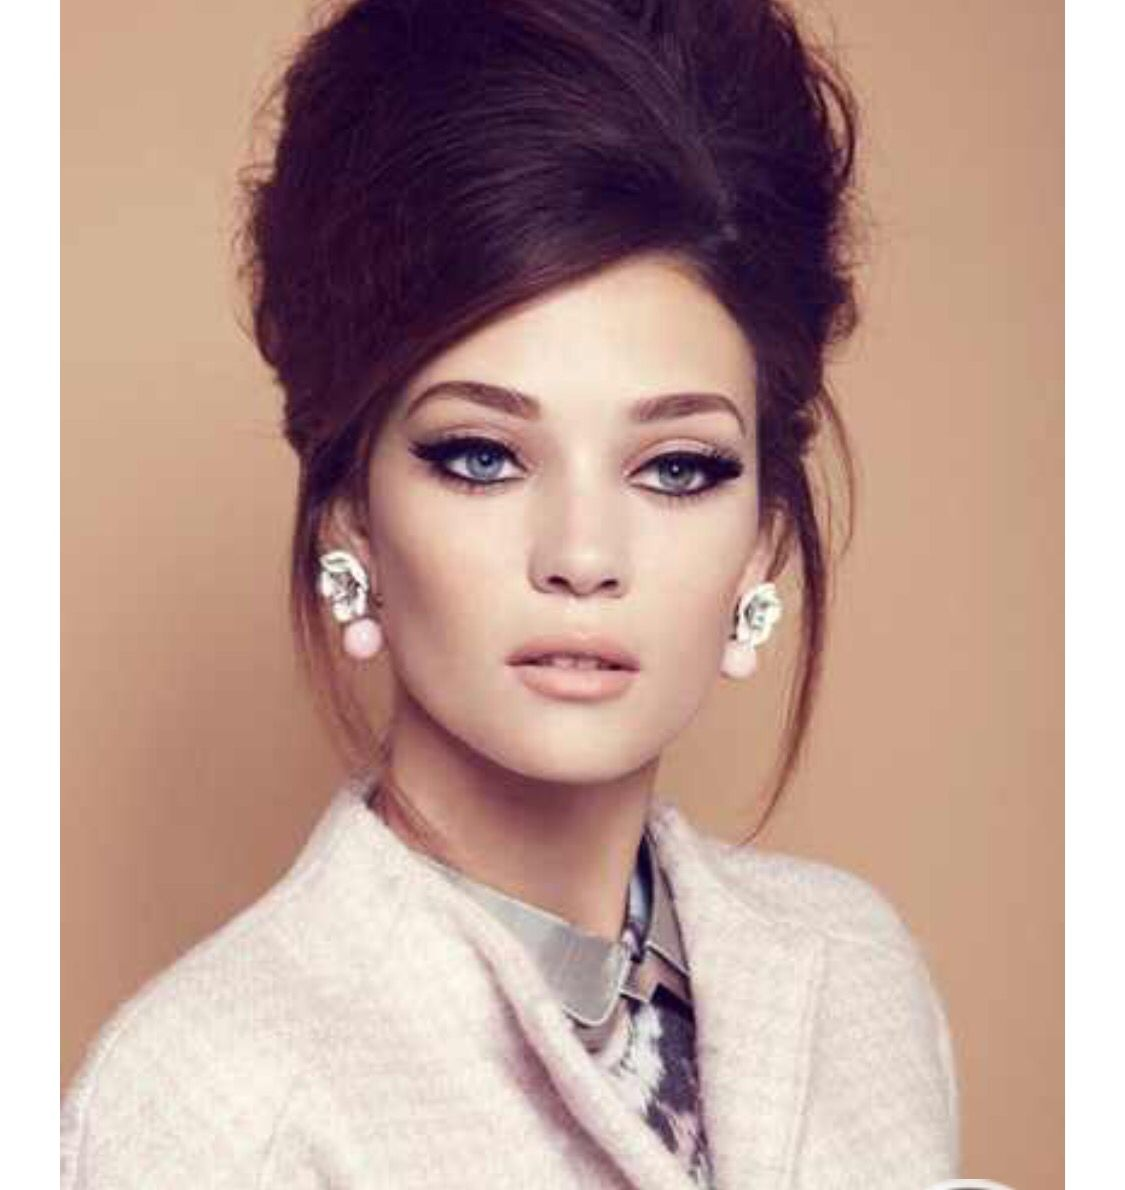 late 60's-early 70's pinup like look. neutral makeup/semi